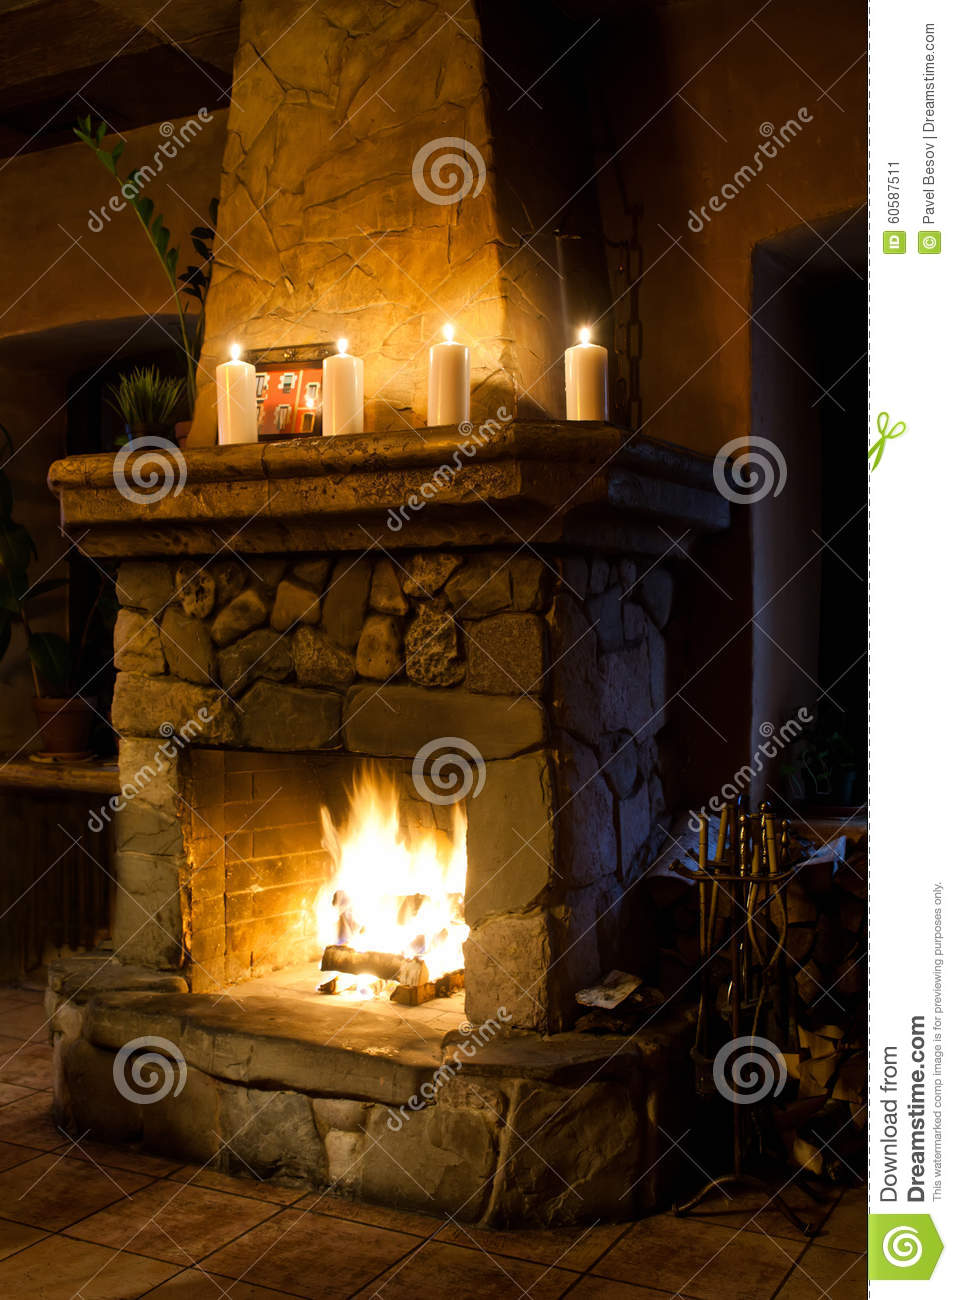 Christmas old fashioned romantic interior fireplace room Interior chimney